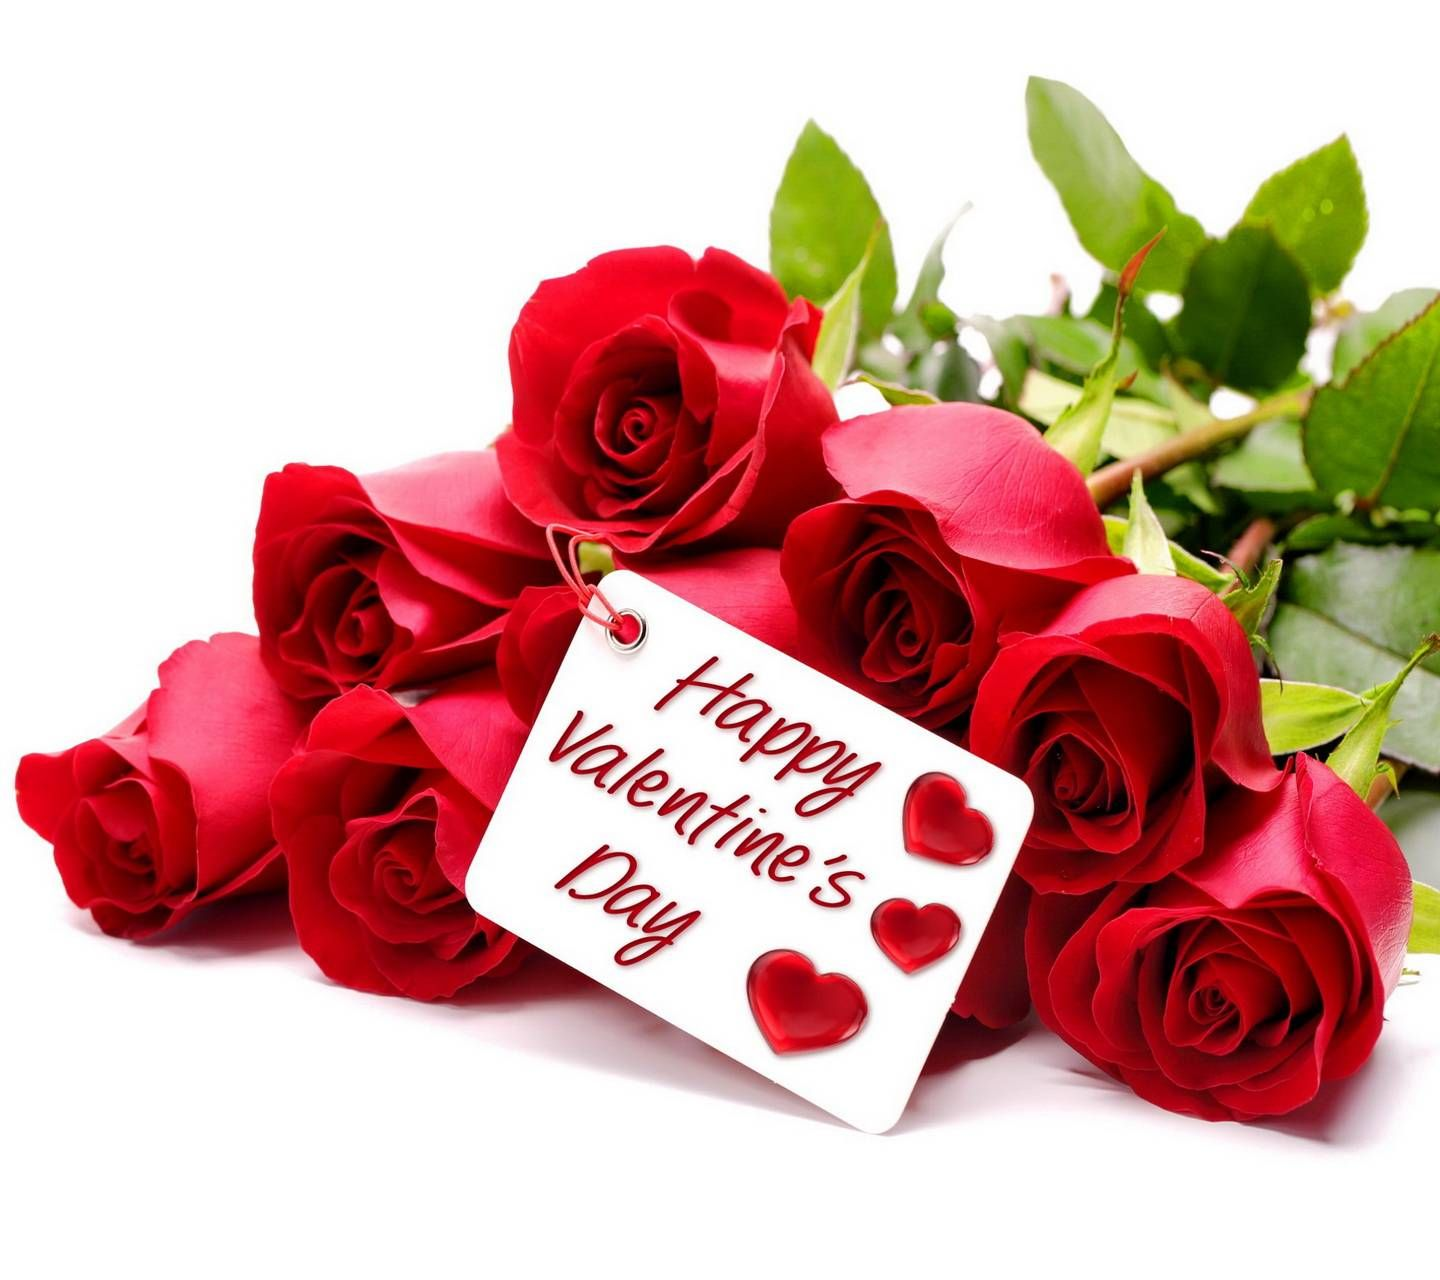 Download Valentines Day Wallpaper By Marika 37 Free On Zedge Now Browse Millions Of Popular Heart Wallpaper In 2021 Happy Rose Day Rose Day Wishes Rose Day Pic